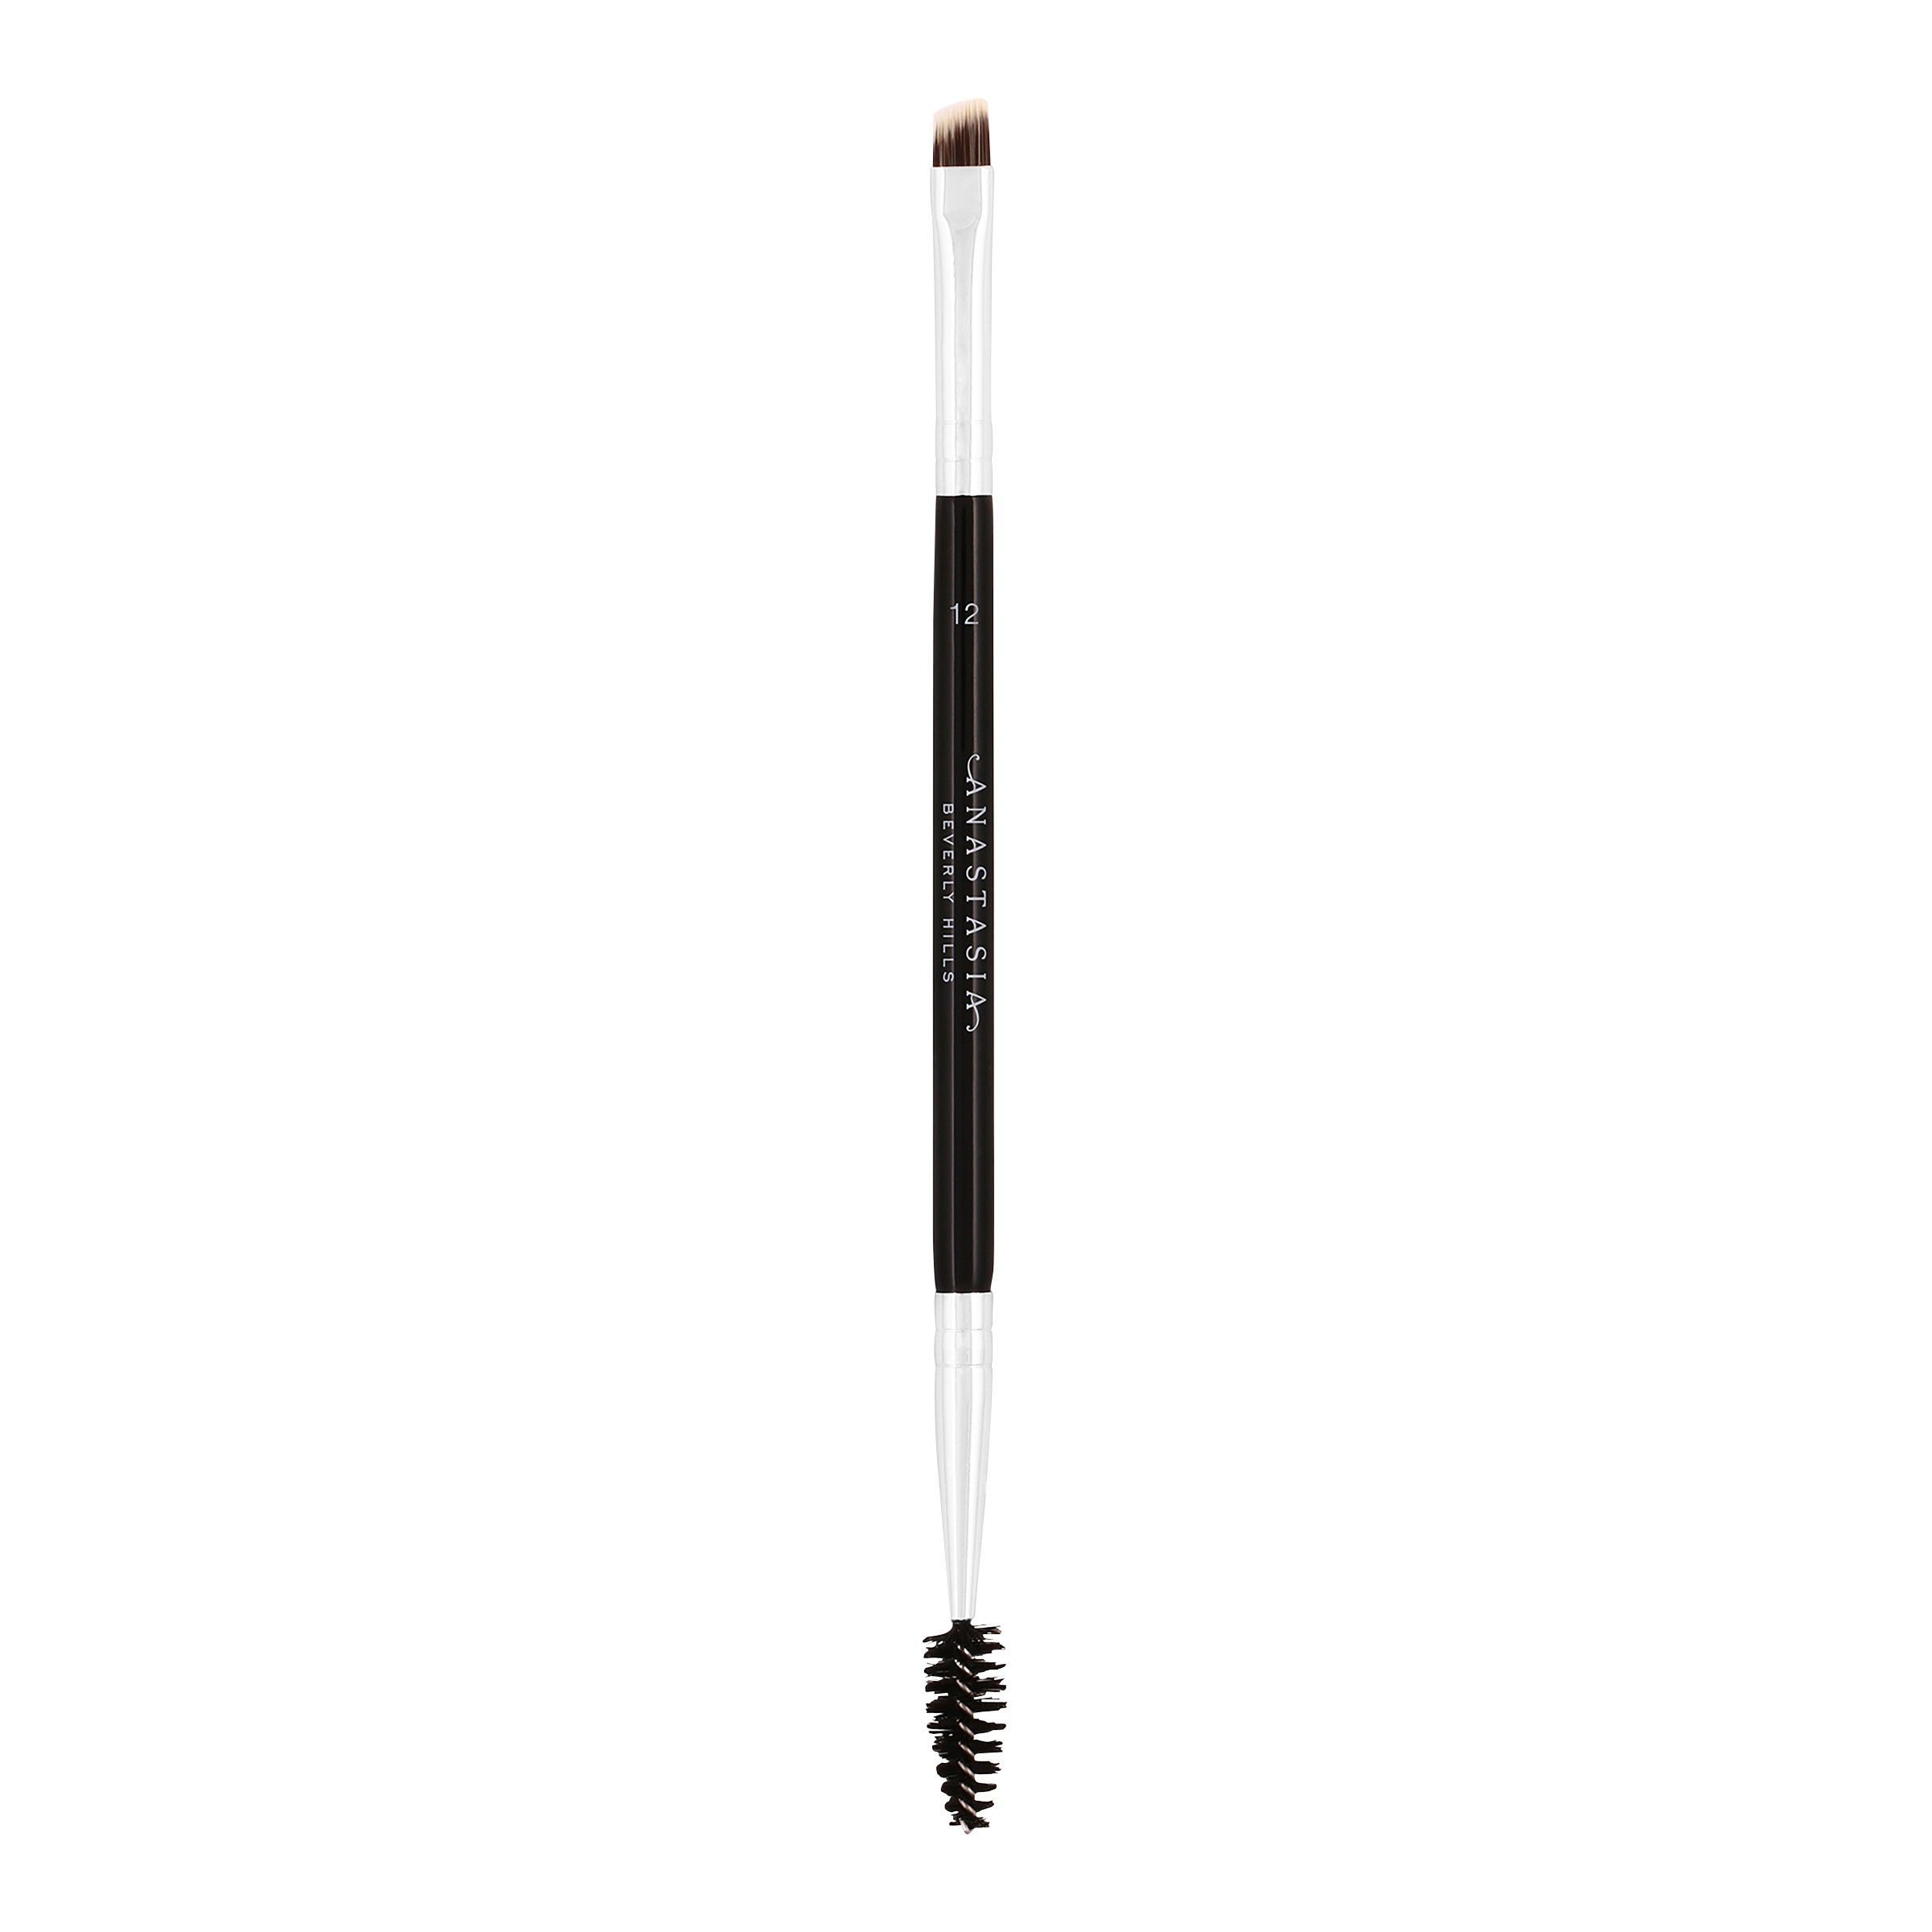 Large Duo Brush #12